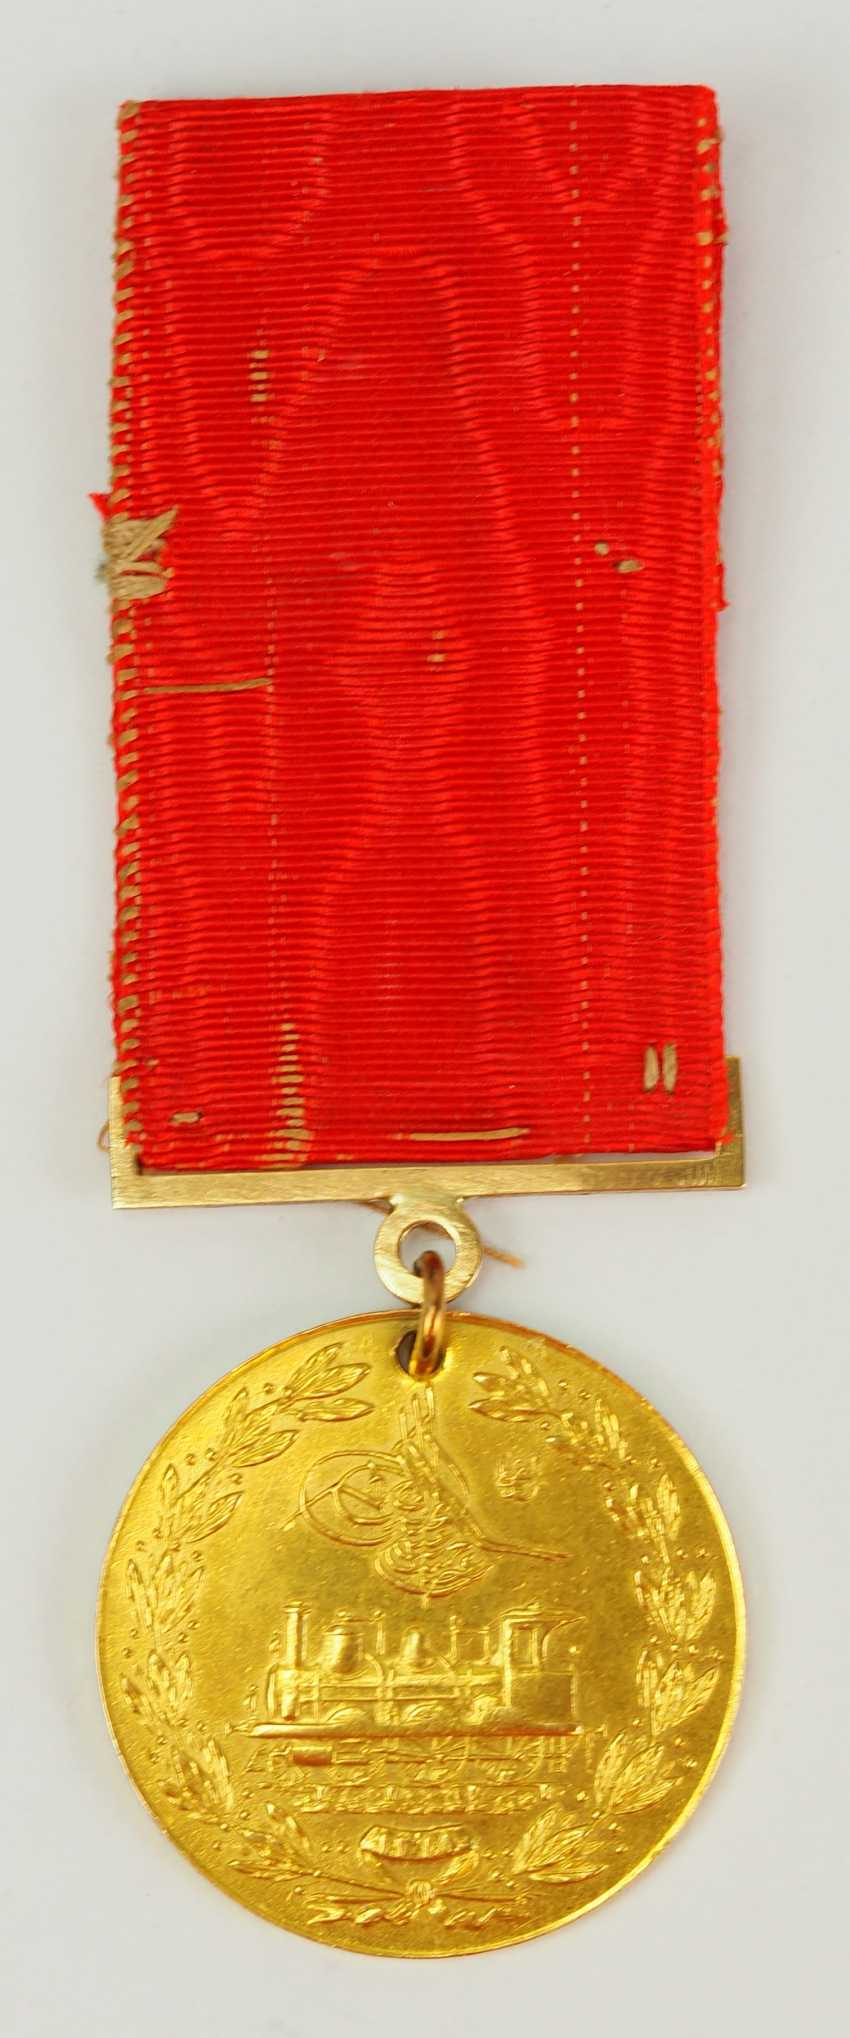 Turkey: medal for memory to the construction of the Hejaz railway, in Gold. - photo 4